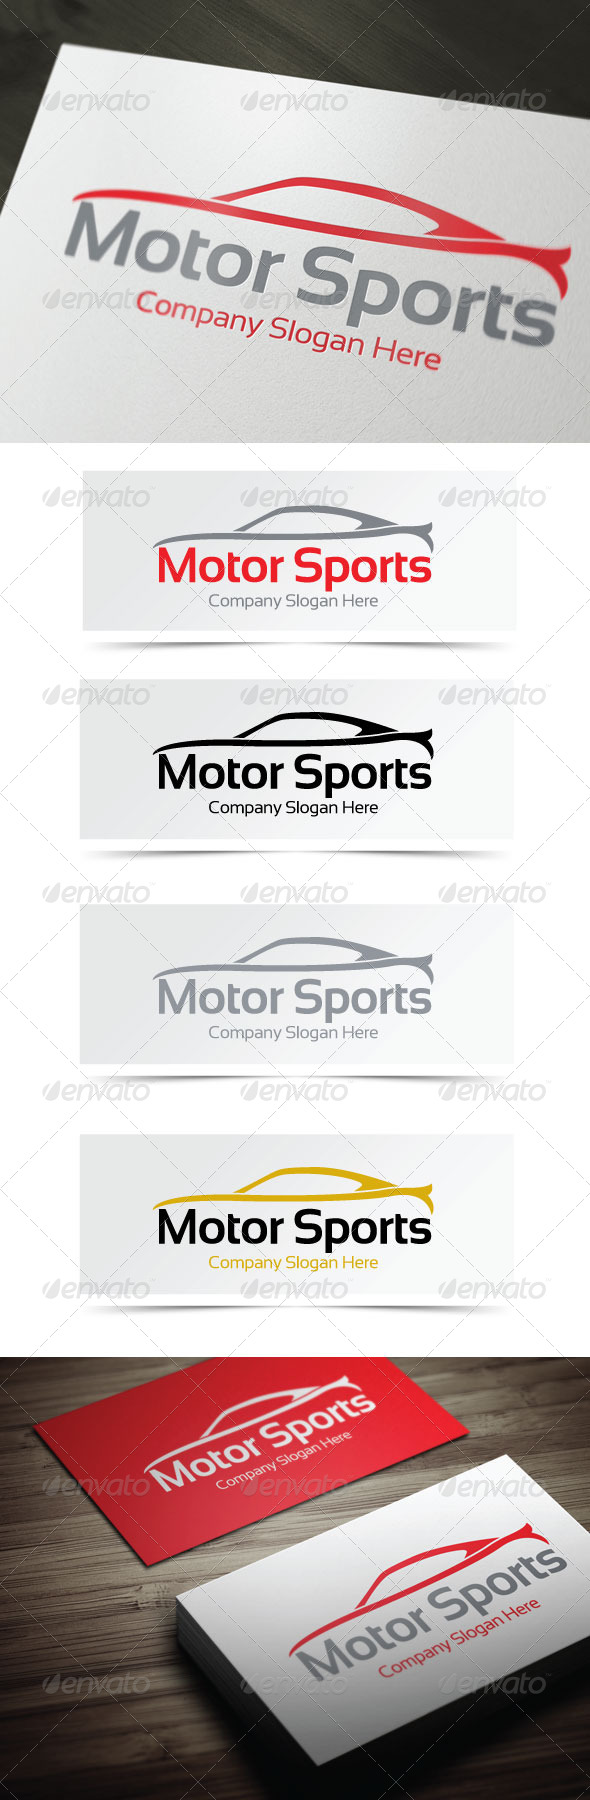 Motor Sports Logo - Objects Logo Templates